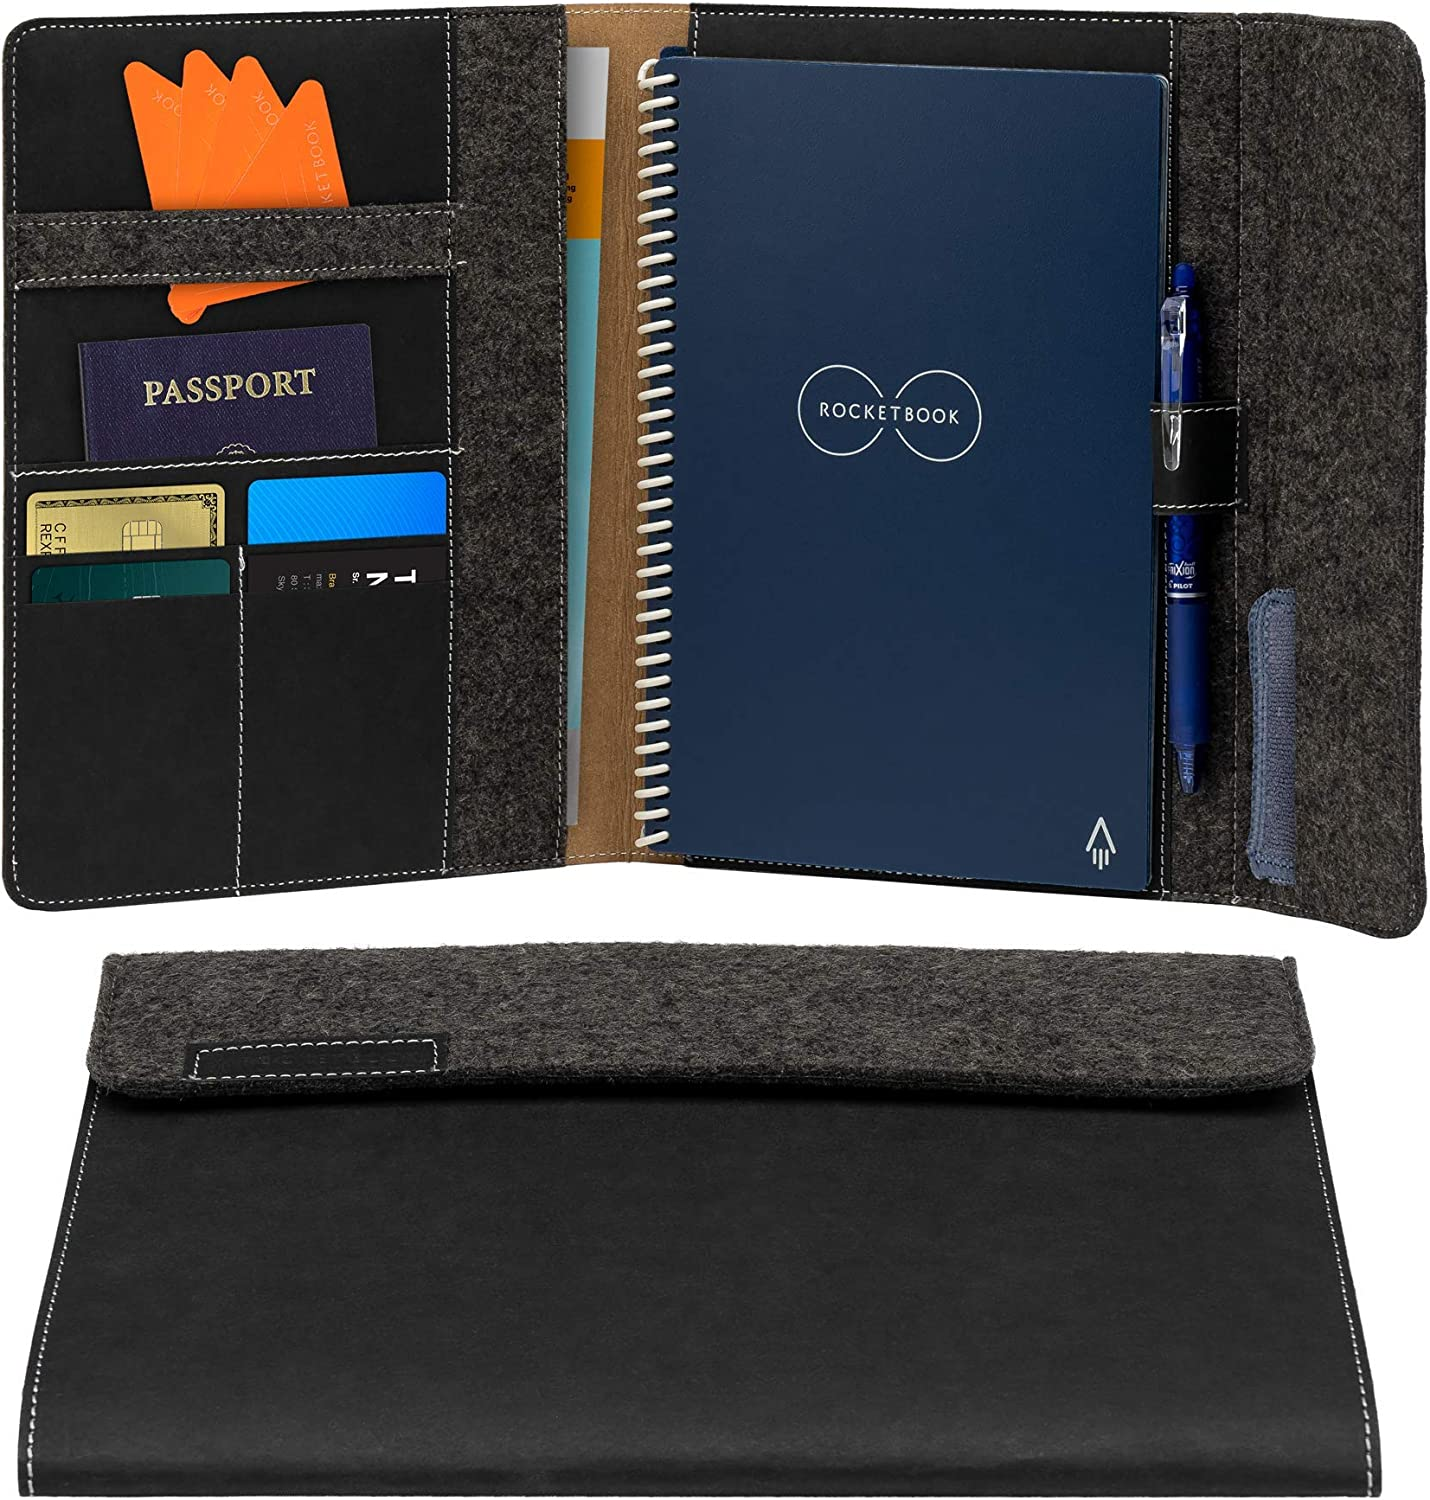 "Rocketbook Smart Notebook Folio Cover - 100% Recyclable, Biodegradable Cover with Pen Holder, Magnetic Clasp & Inner Storage - Dark Matter Black, Executive Size (6"" x 8.8"")"